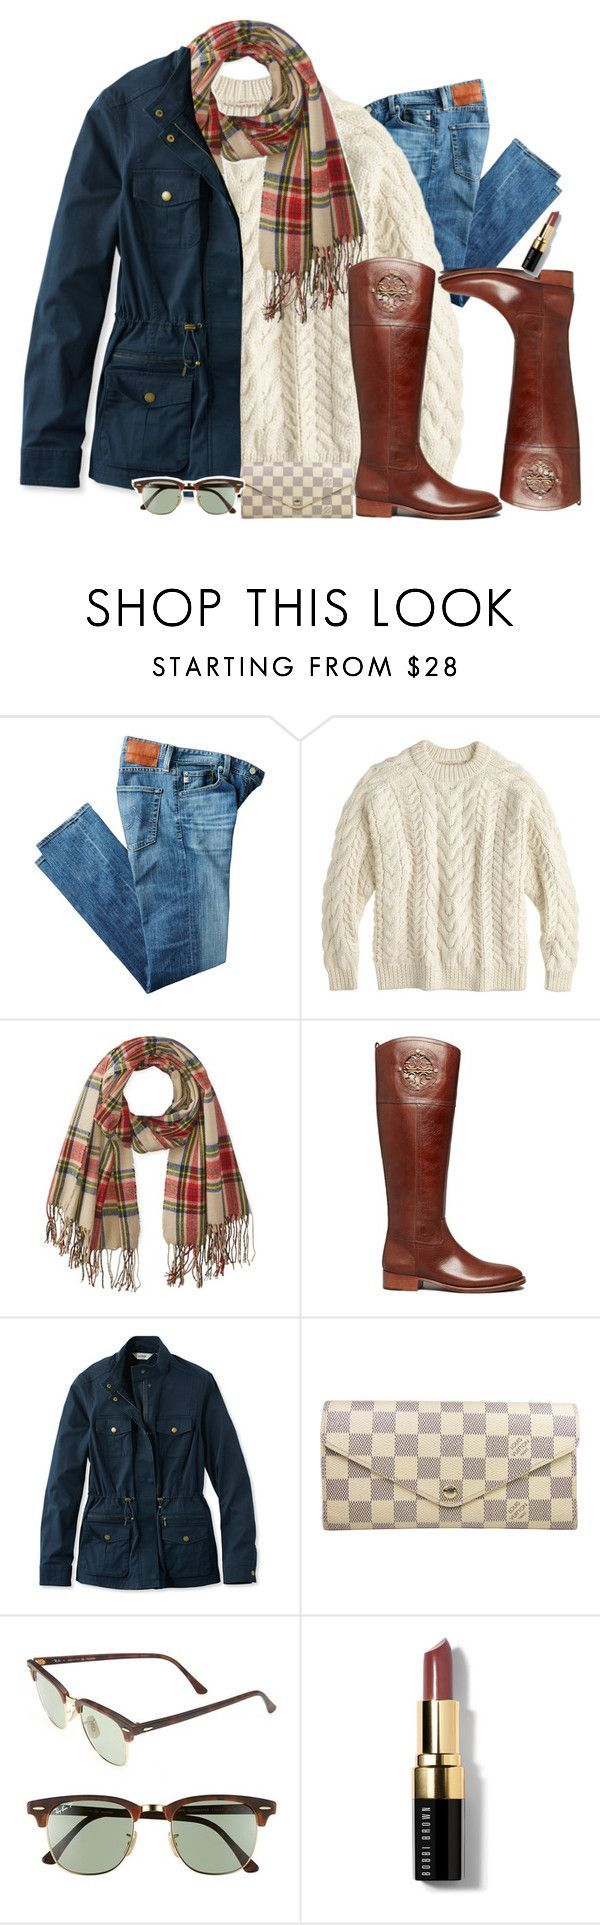 """""""What's your favorite season??"""" by preppygirlusa ❤ liked on Polyvore featuring AG Adriano Goldschmied, J.Crew, Rampage, Tory Burch, L.L.Bean, Louis Vuitton, Ray-Ban and Bobbi Brown Cosmetics"""